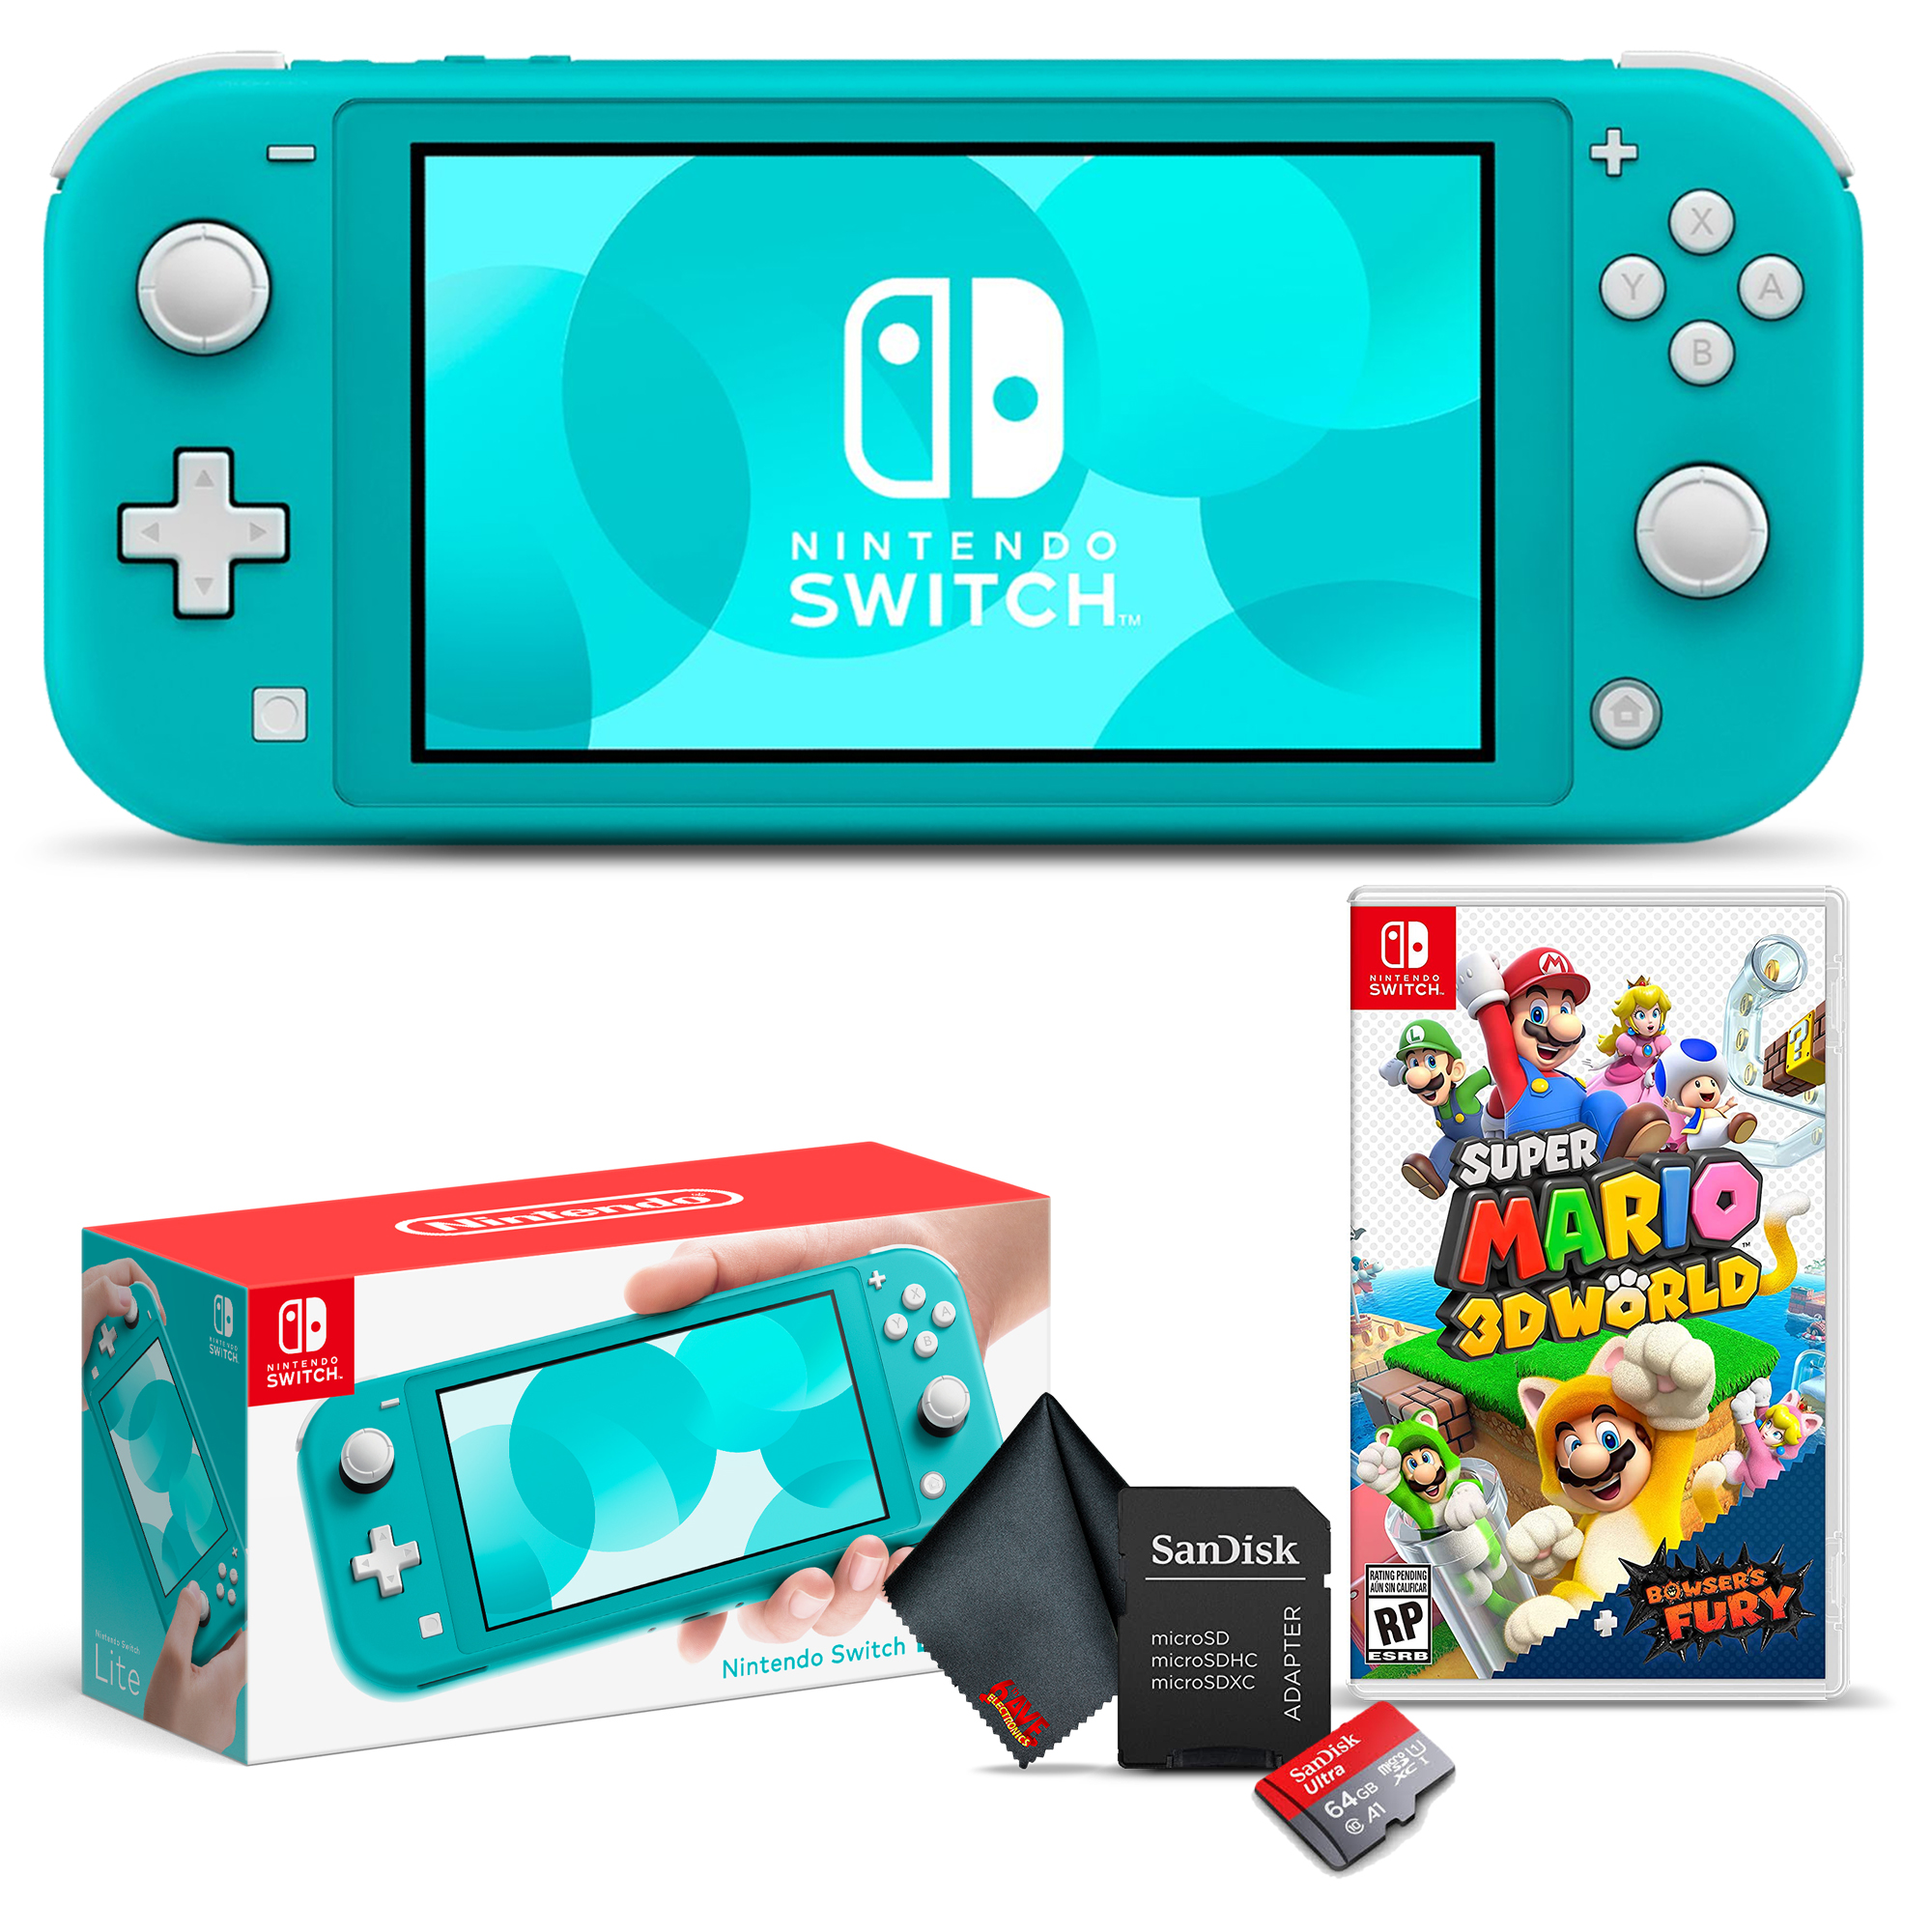 miniature 20 - Nintendo Switch Lite Gaming Console Bundle with Super Mario 3D World + Bowser's